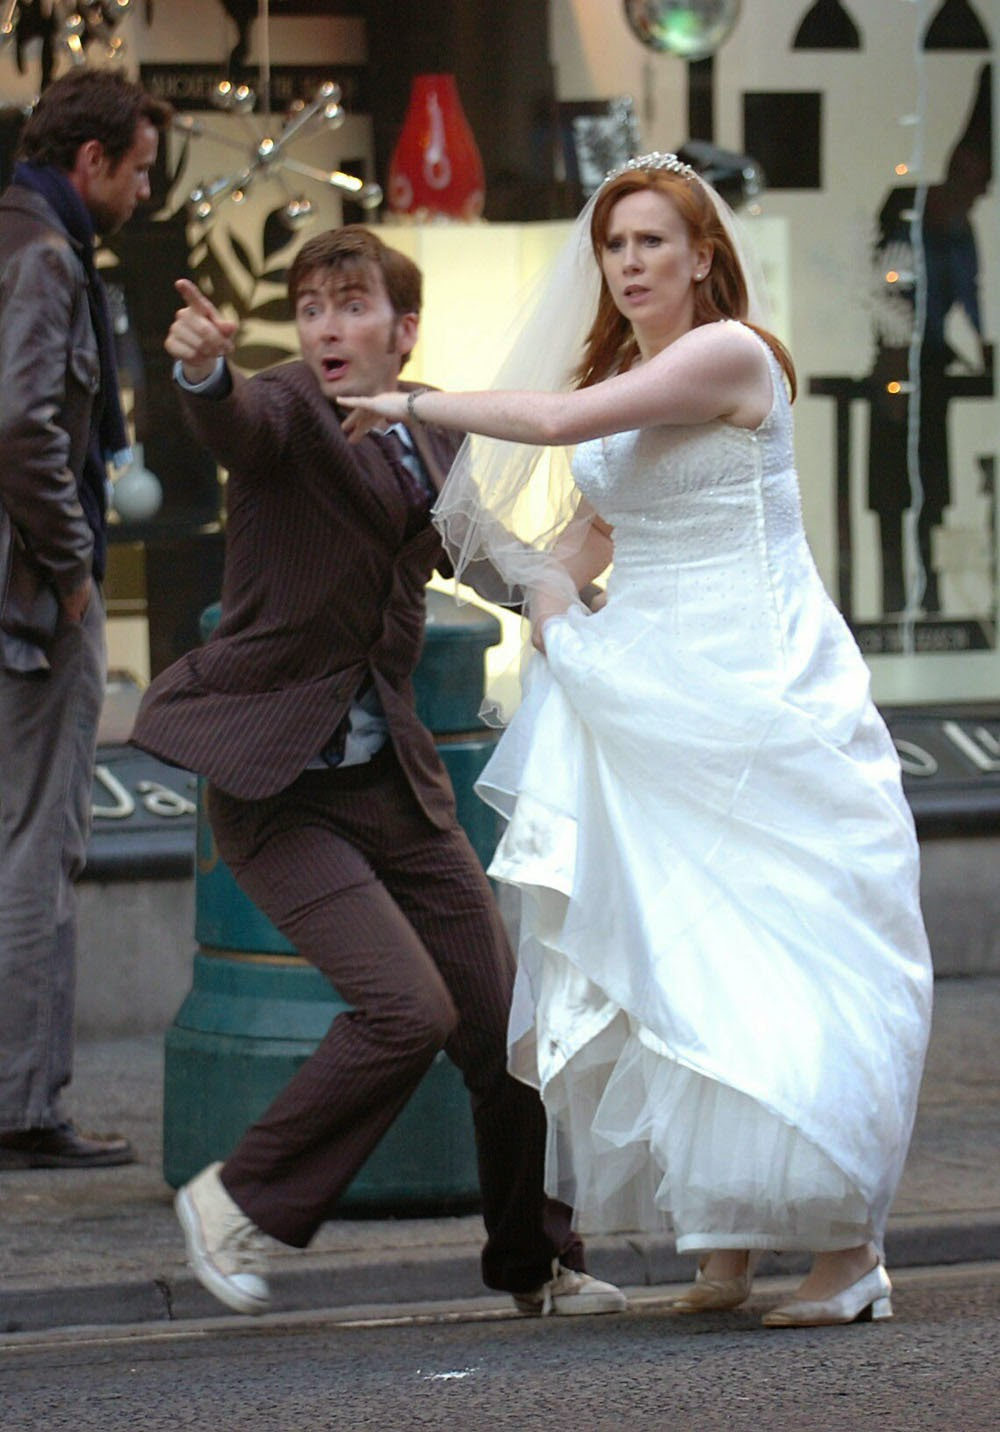 Scenes Of The Doctor And Donna Trying To Make An Escape From Robot Santas By Hailing A Taxi Were Filmed In Cardiff As Was Motorway Chase Sequence